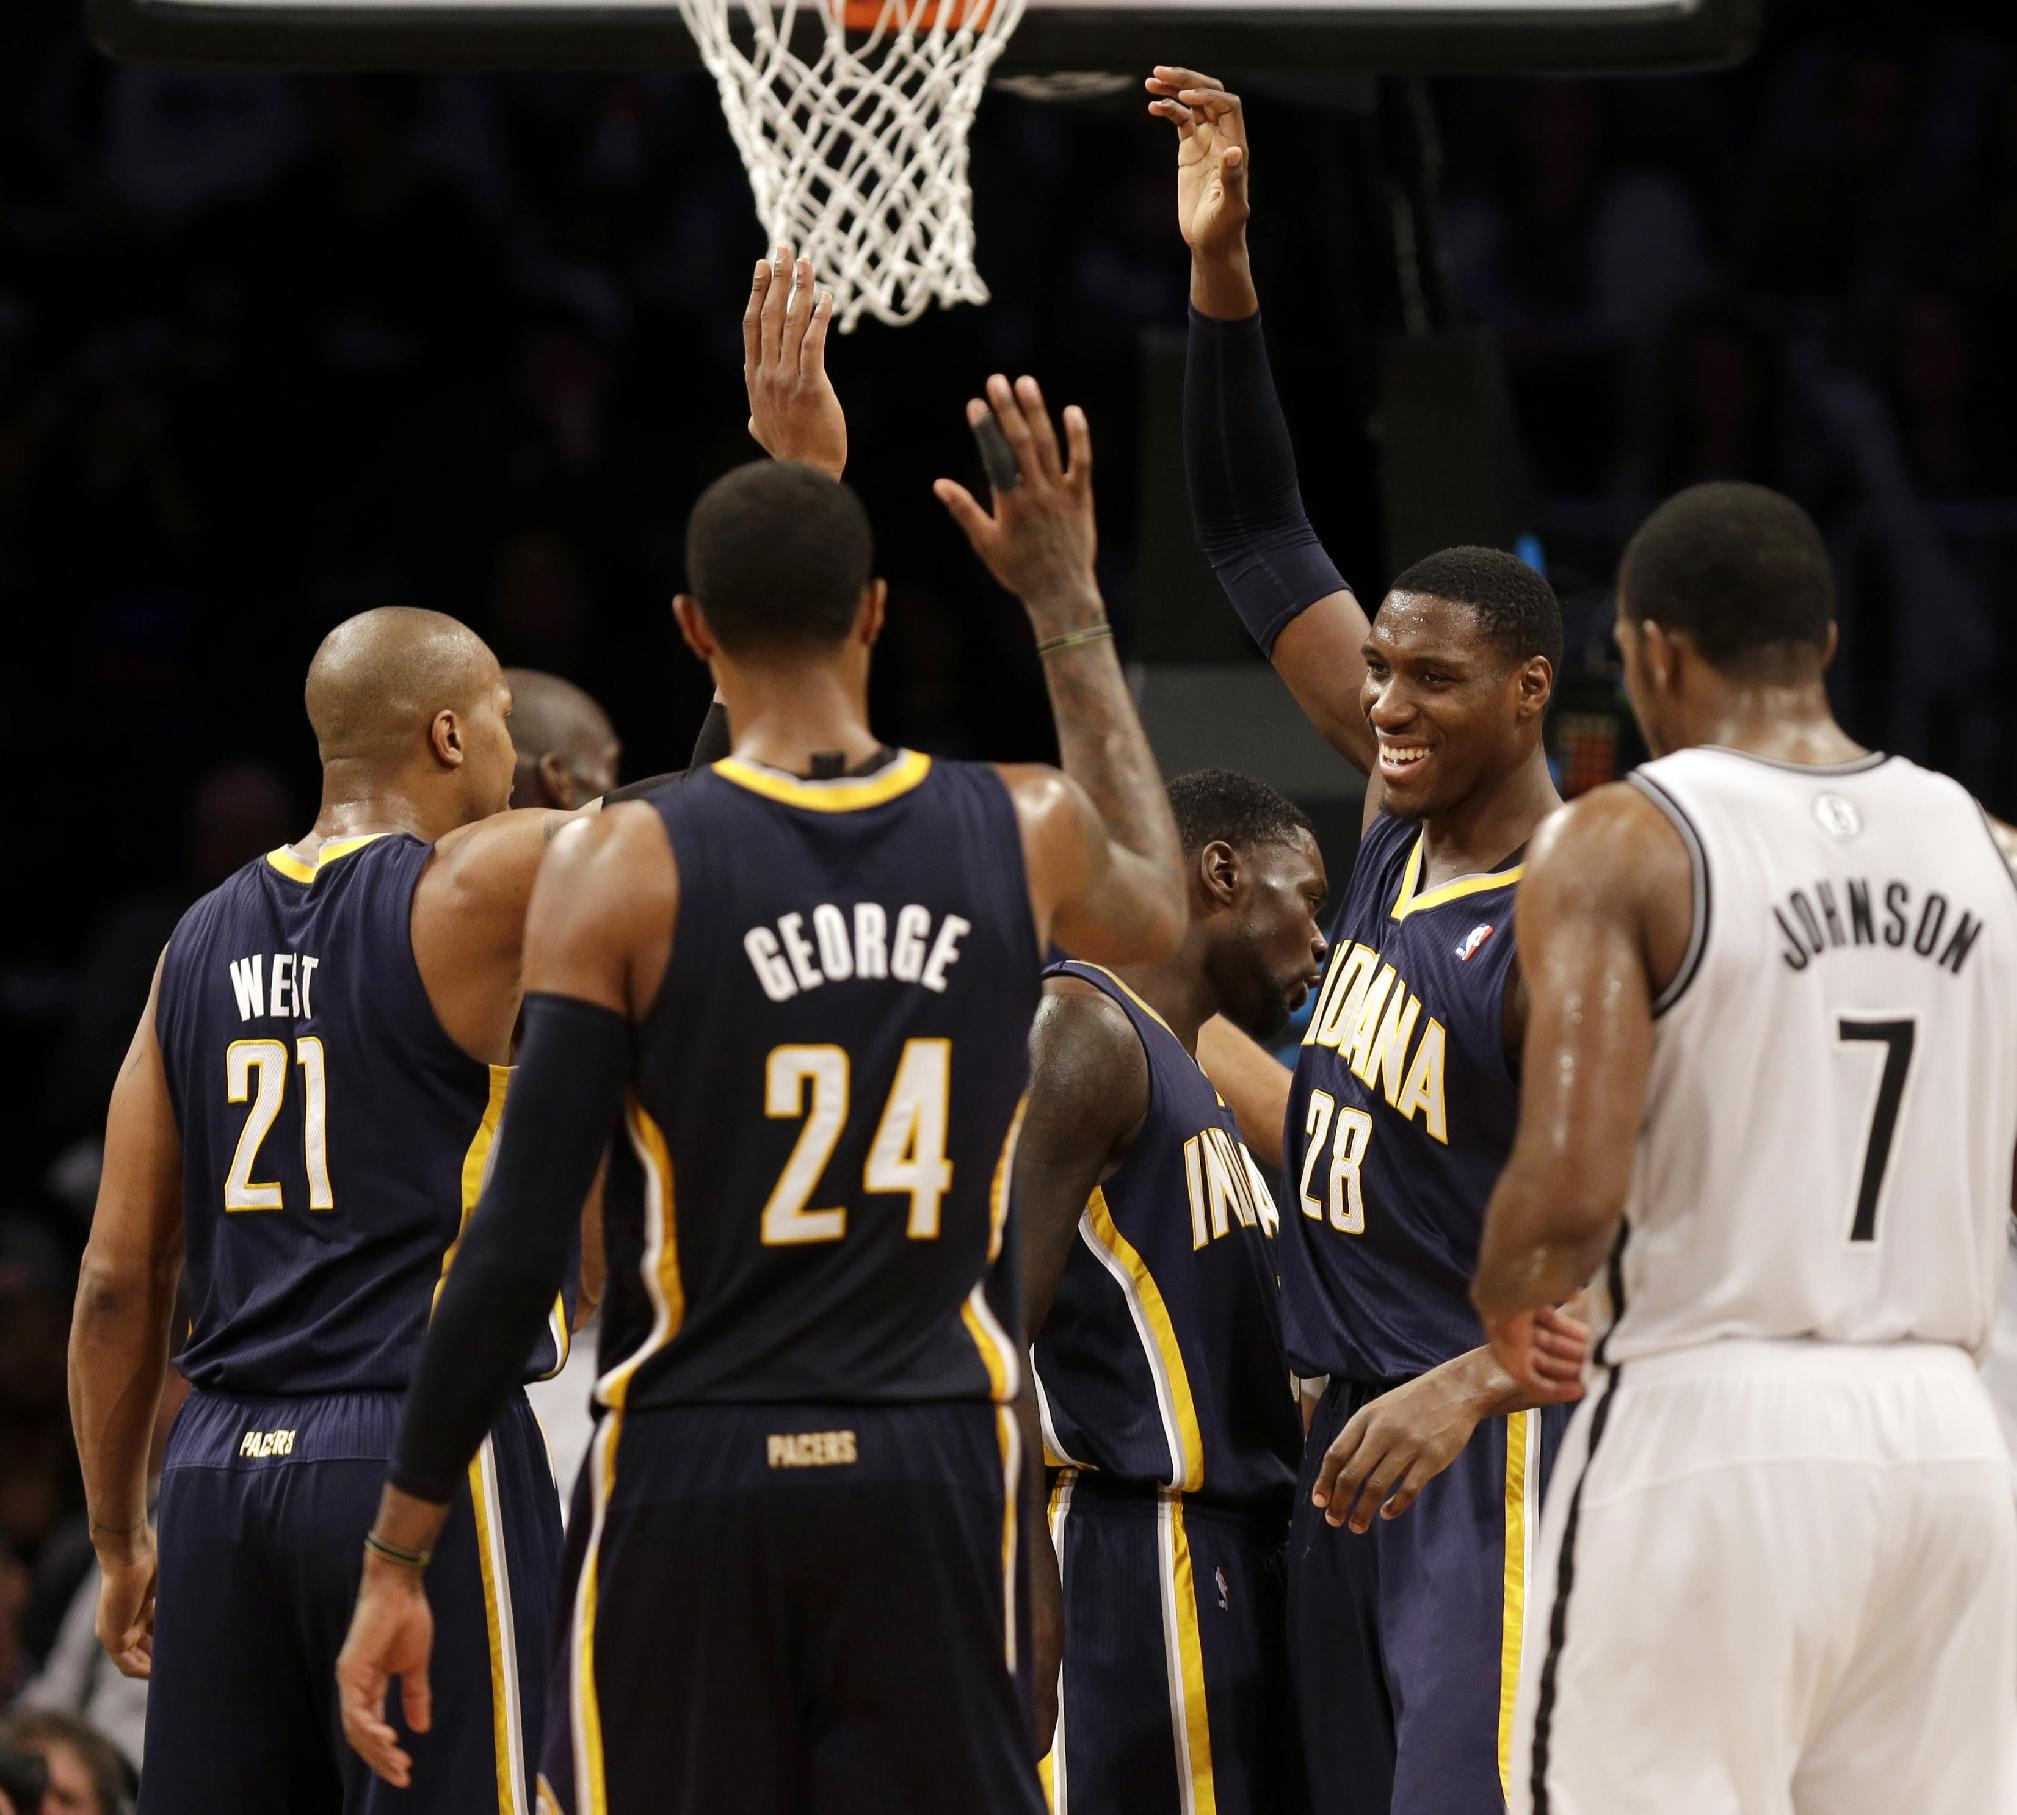 While Brooklyn Nets' Joe Johnson (7) watches, Indiana Pacers' David West (21), lPaul George (24) and Ian Mahinmi (28) celebrate with teammates during the second half of an NBA basketball game Monday, Dec. 23, 2013, in New York. The Pacers defeated the Nets 103-86